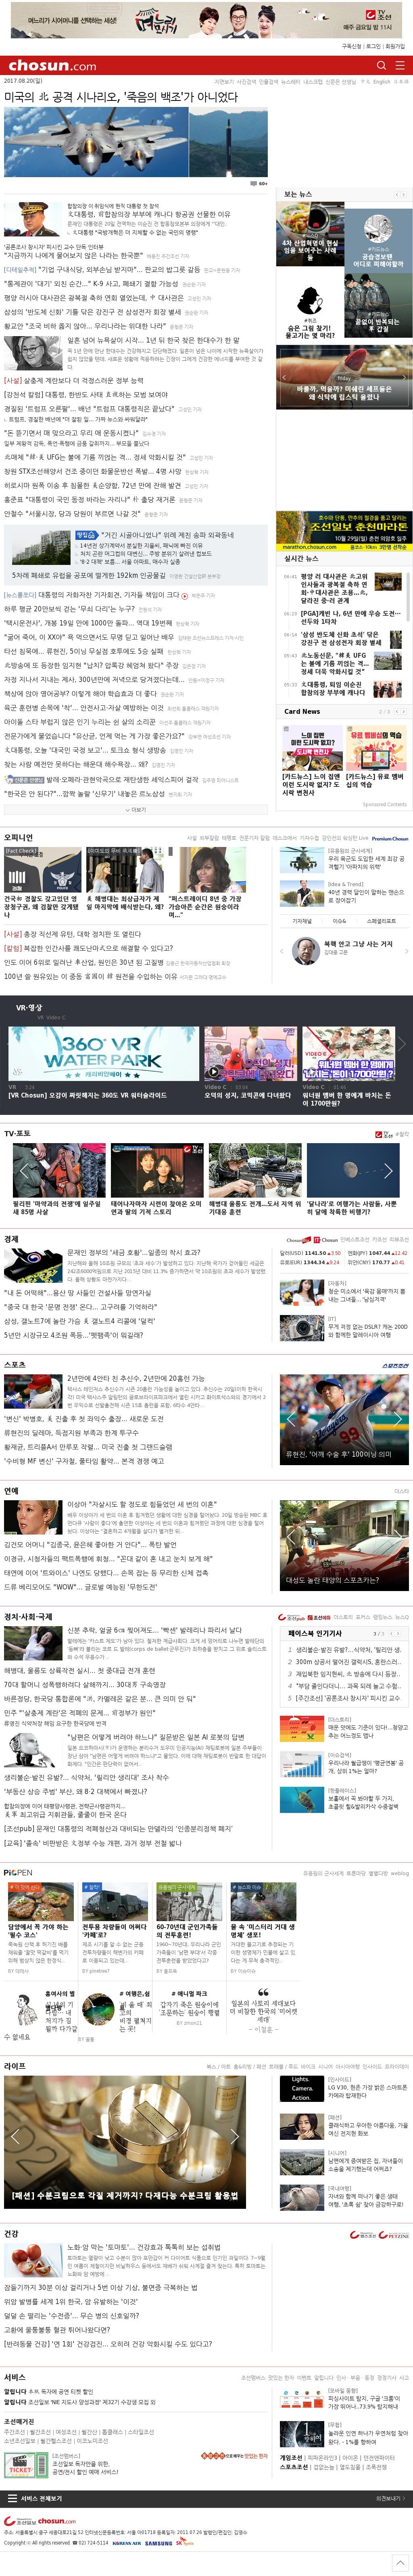 chosun.com at Sunday Aug. 20, 2017, 7:02 a.m. UTC